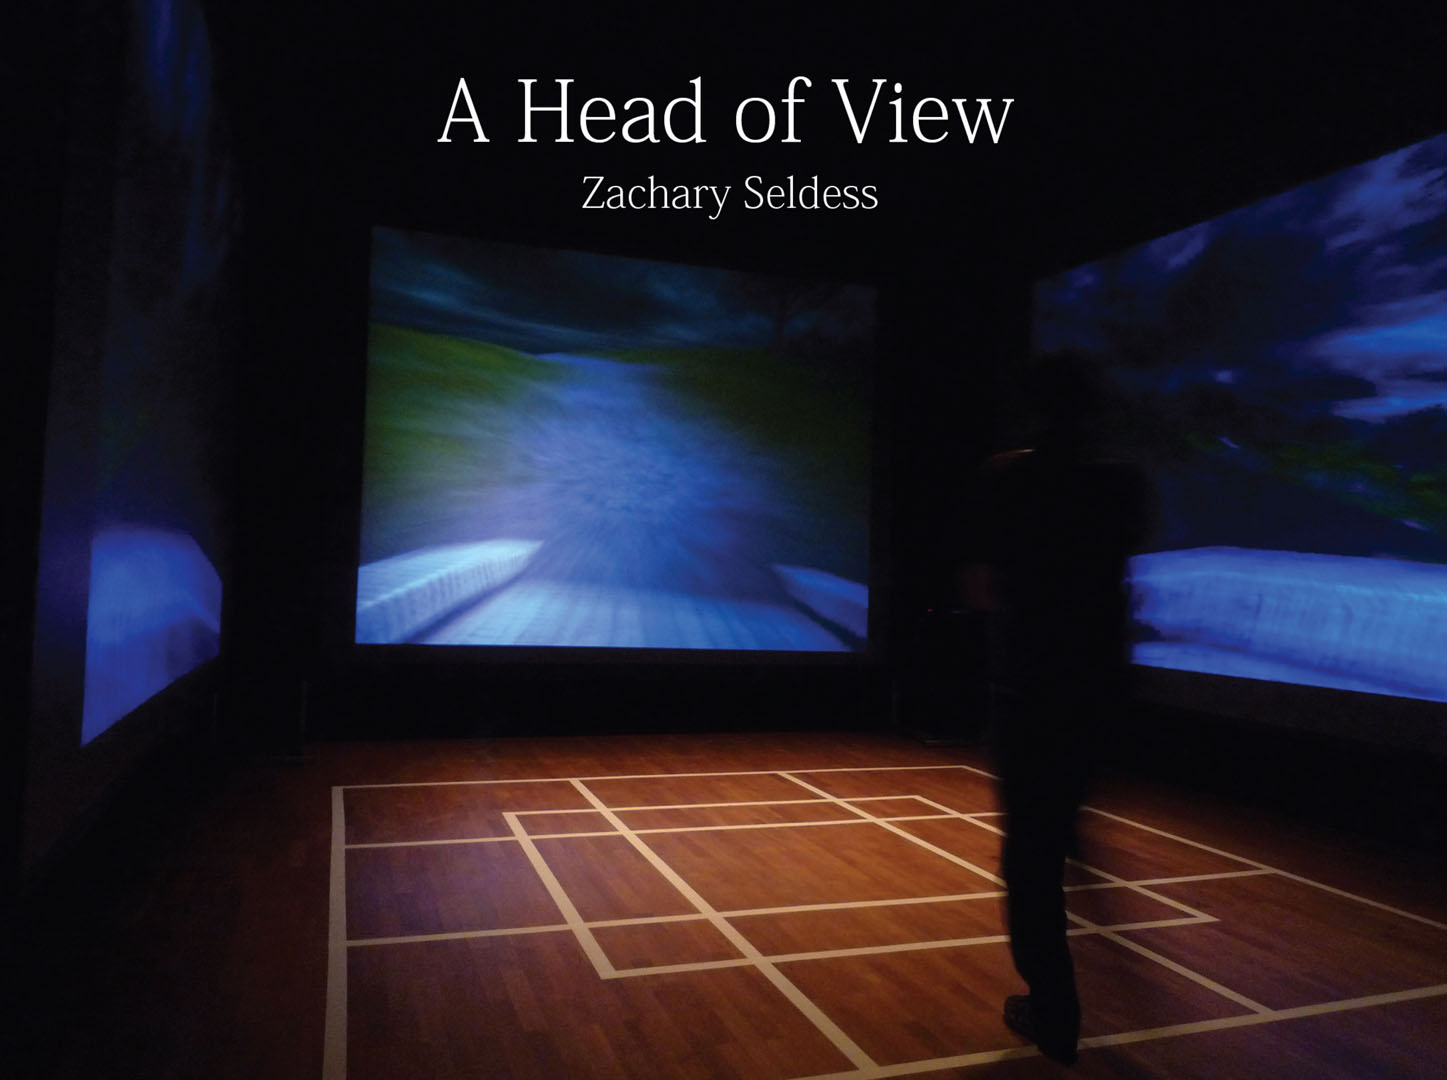 ©, Zachary Seldess, A Head of View